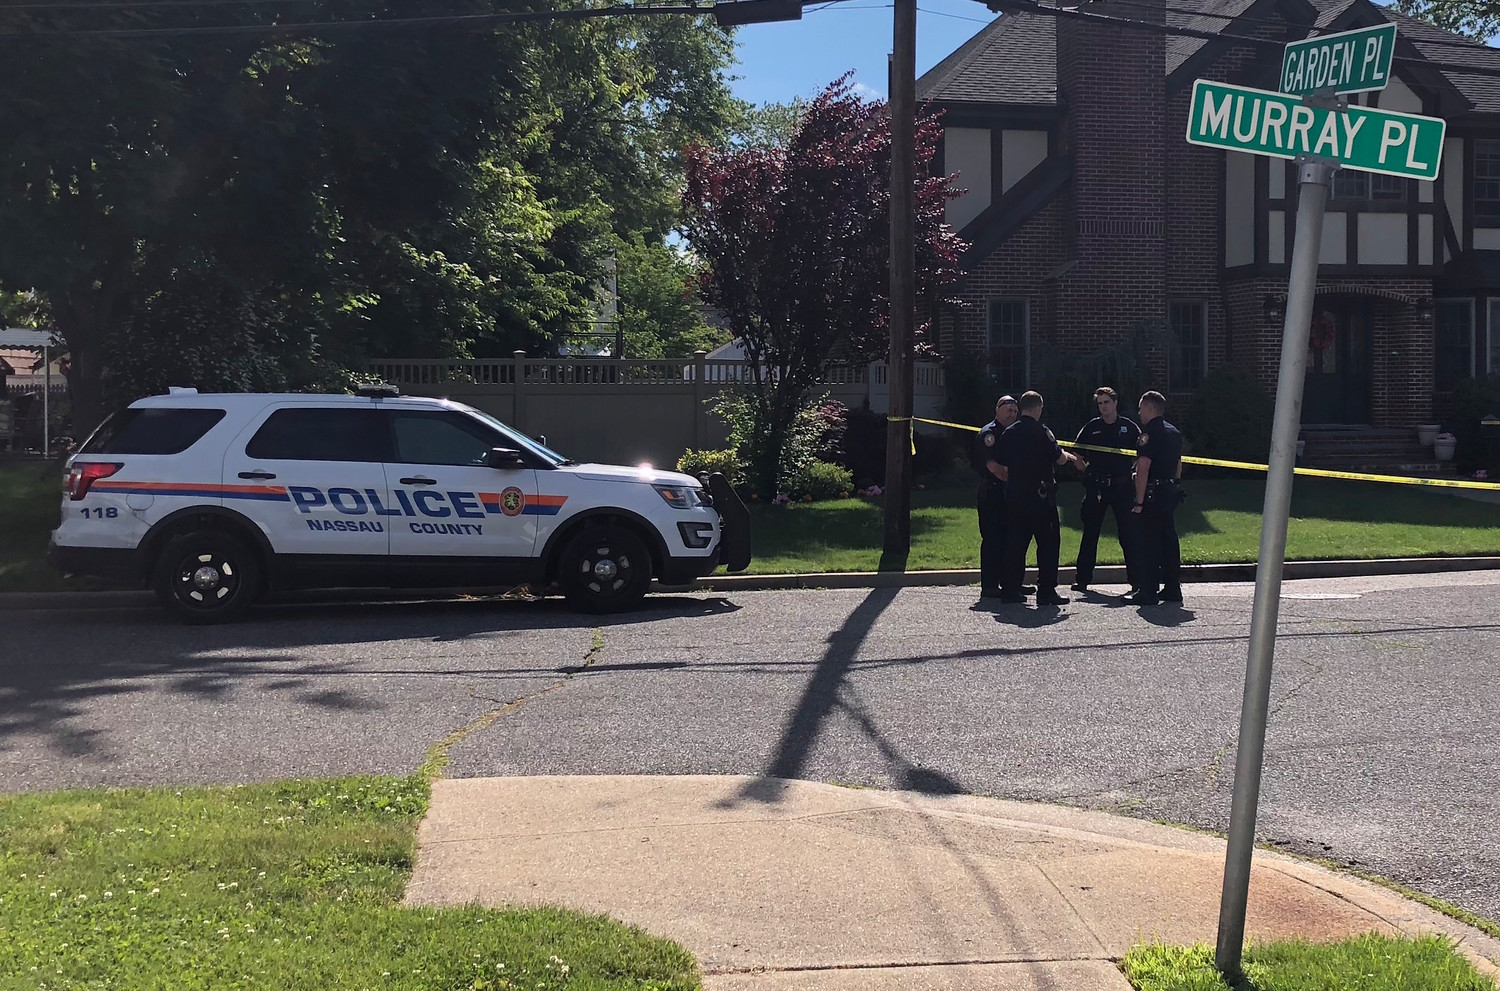 Police have been investigating an officer-involved shooting on Murray Place in Merrick.